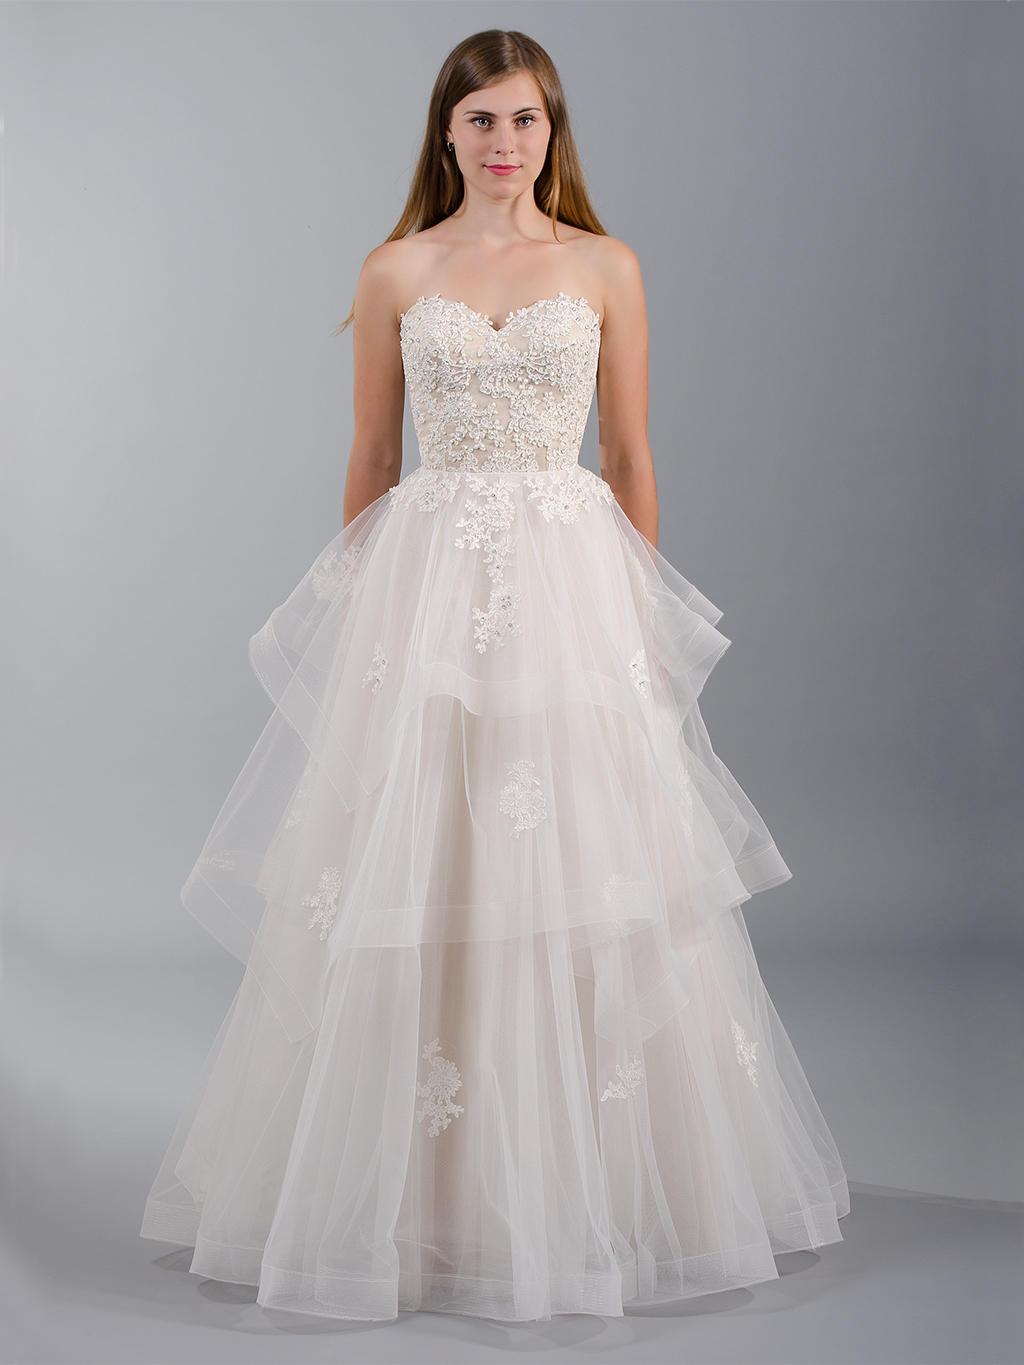 Strapless lace wedding dress 4040